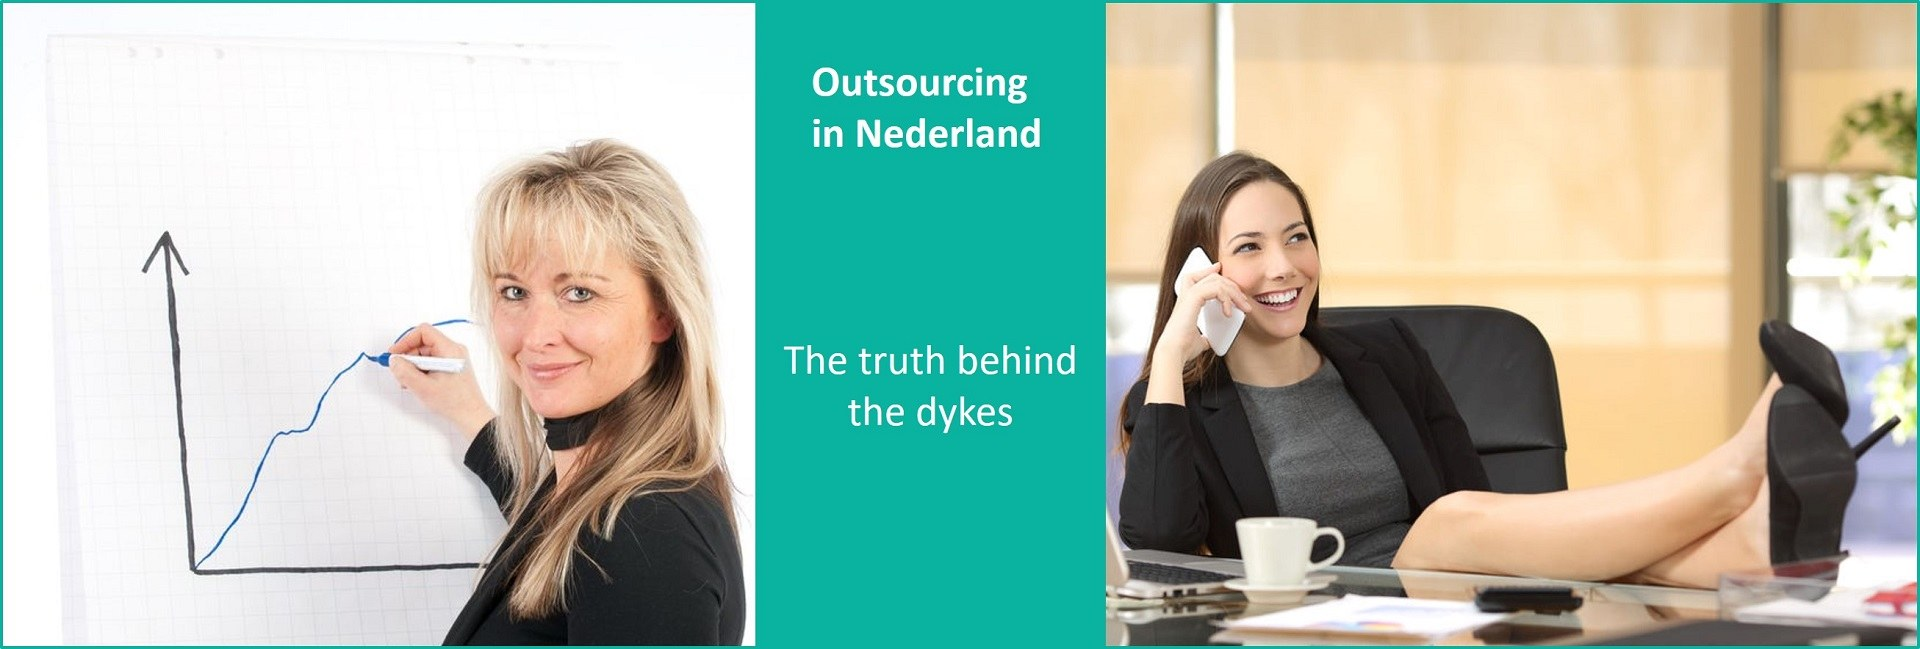 Outsourcing in Nederland